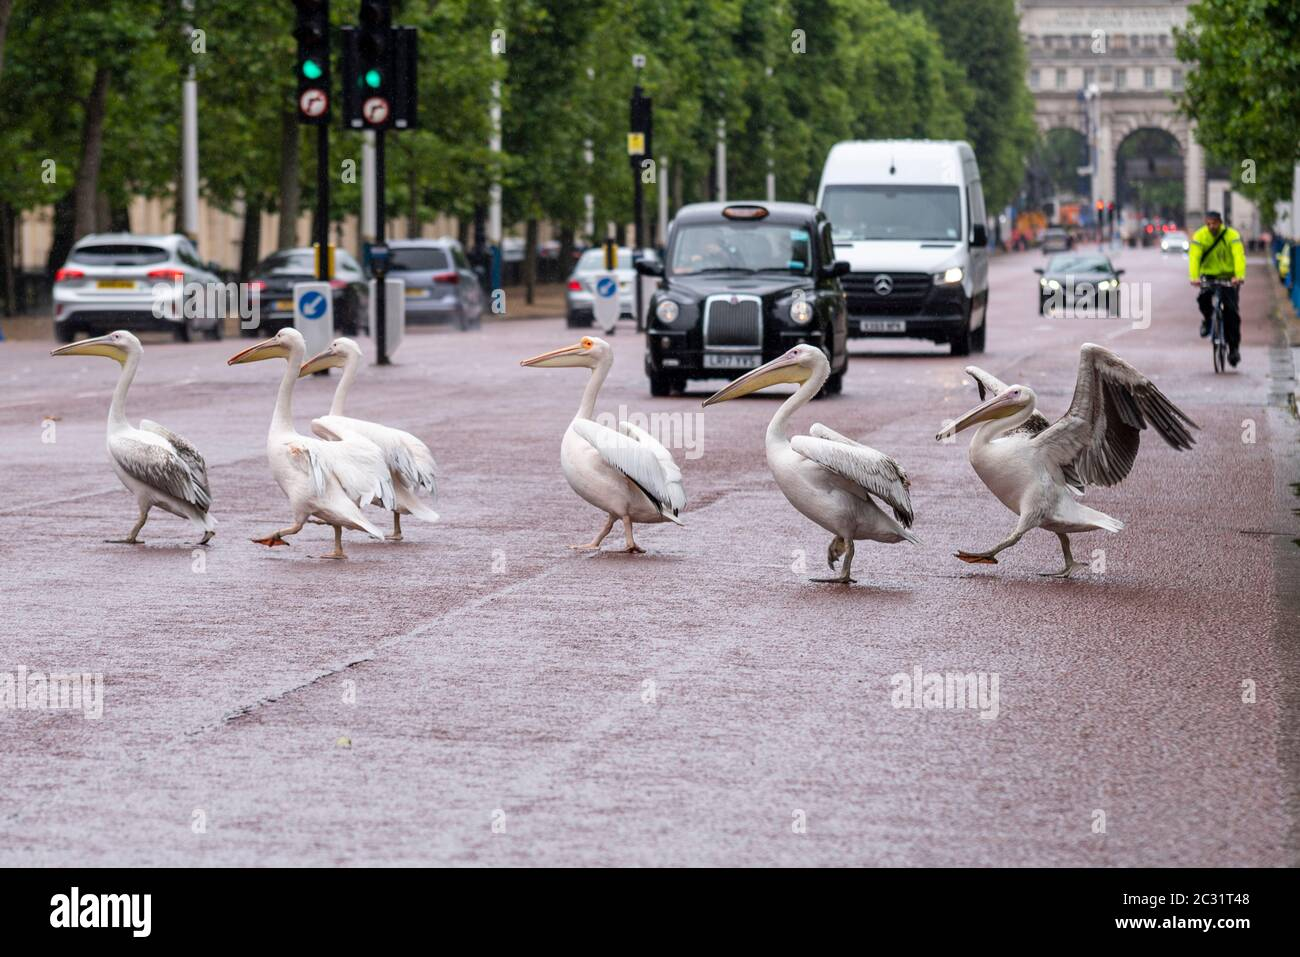 pelicans-crossing-the-mall-road-in-london-from-st-jamess-park-stopping-traffic-pelican-crossing-with-attitude-2C31T48.jpg